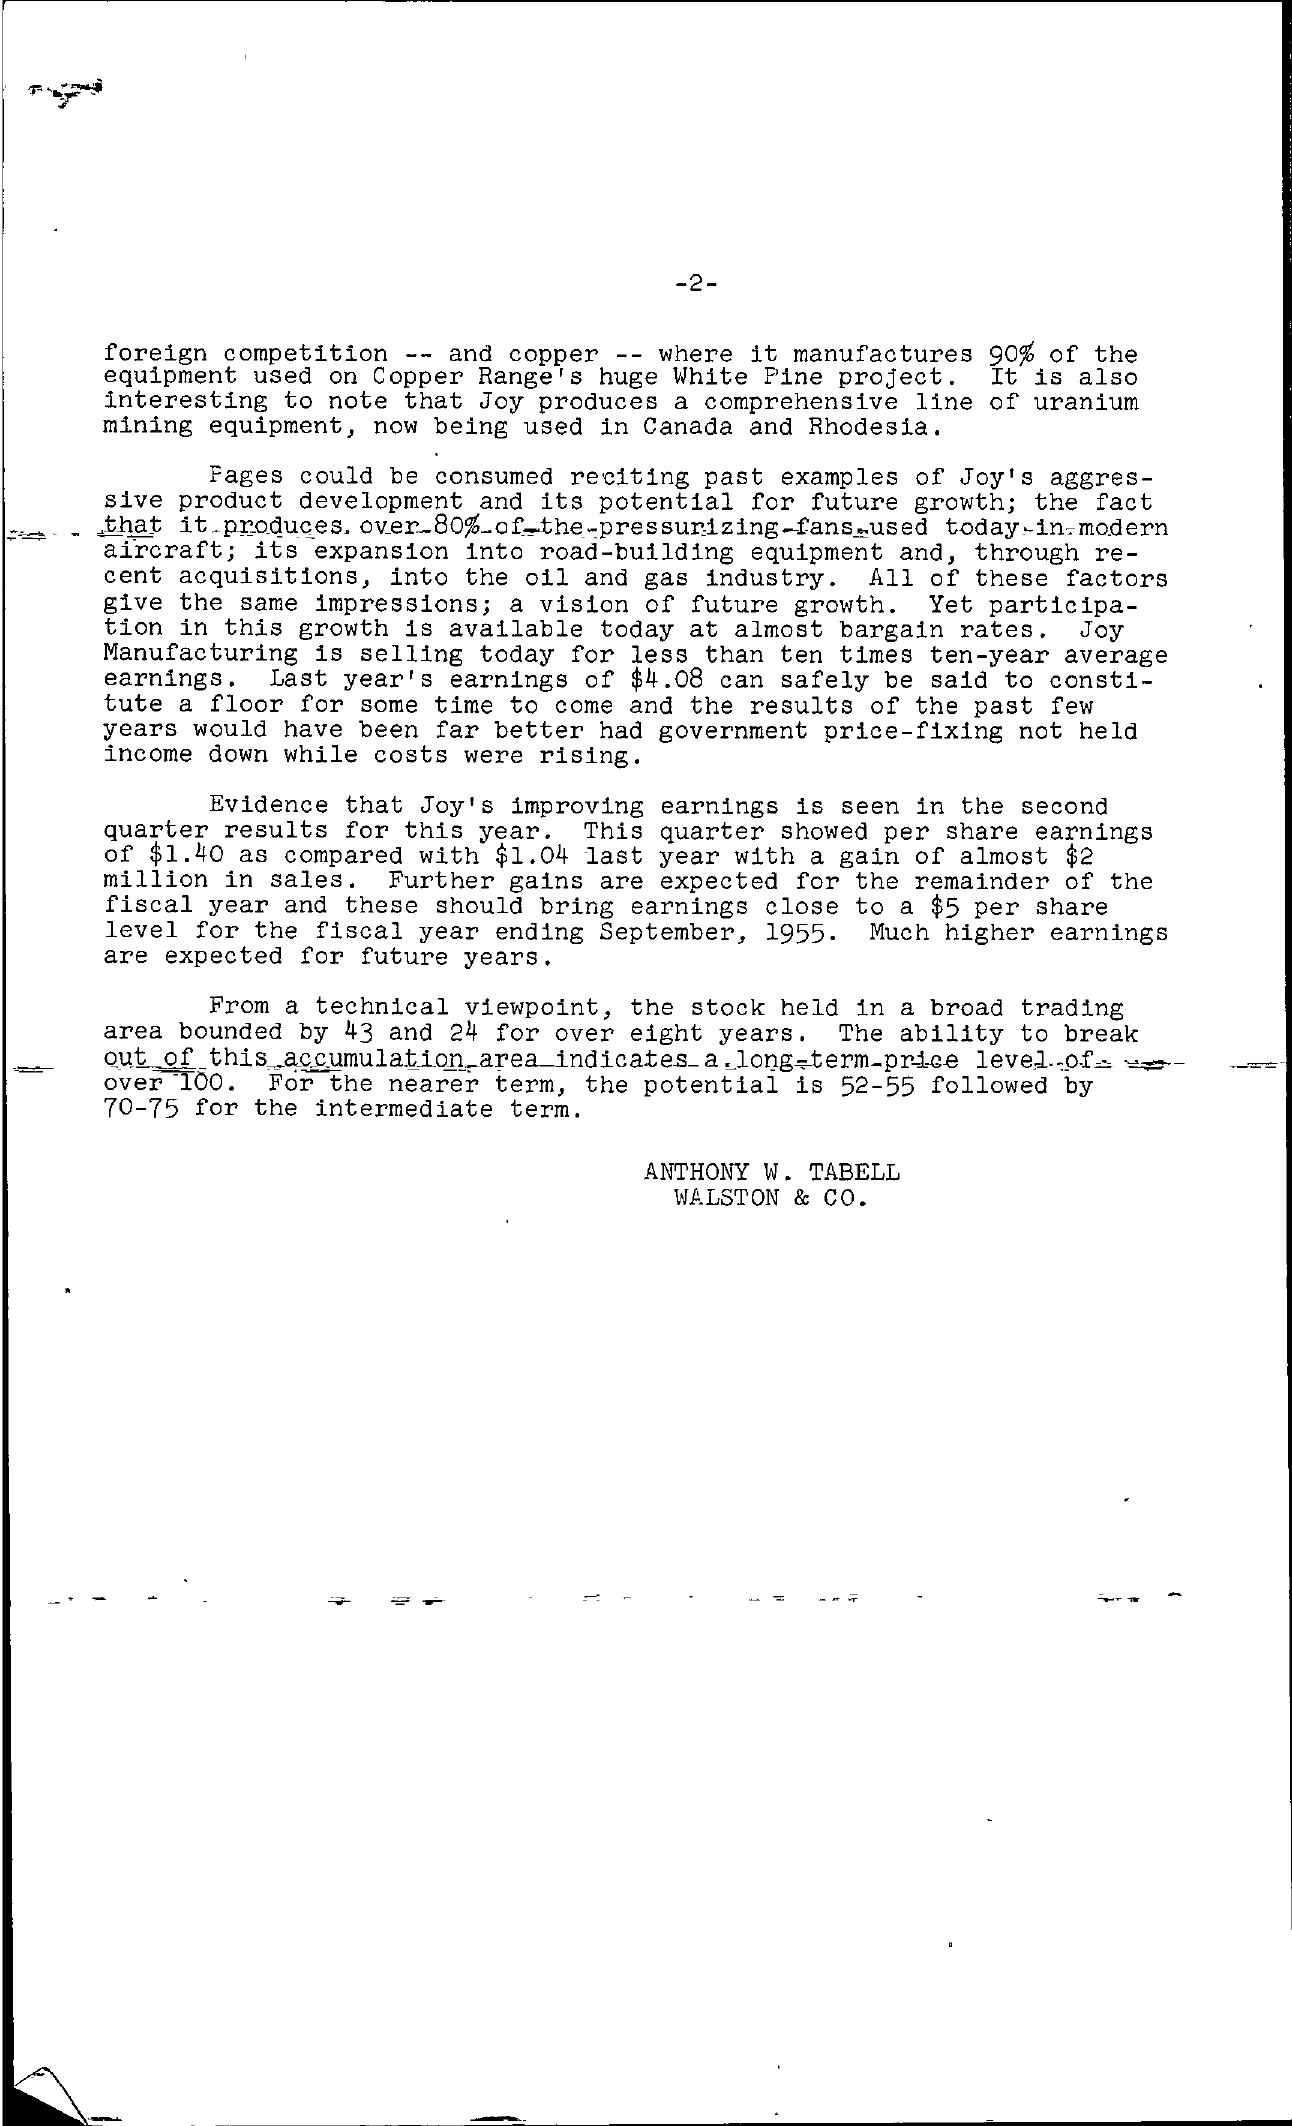 Tabell's Market Letter - June 10, 1955 page 2